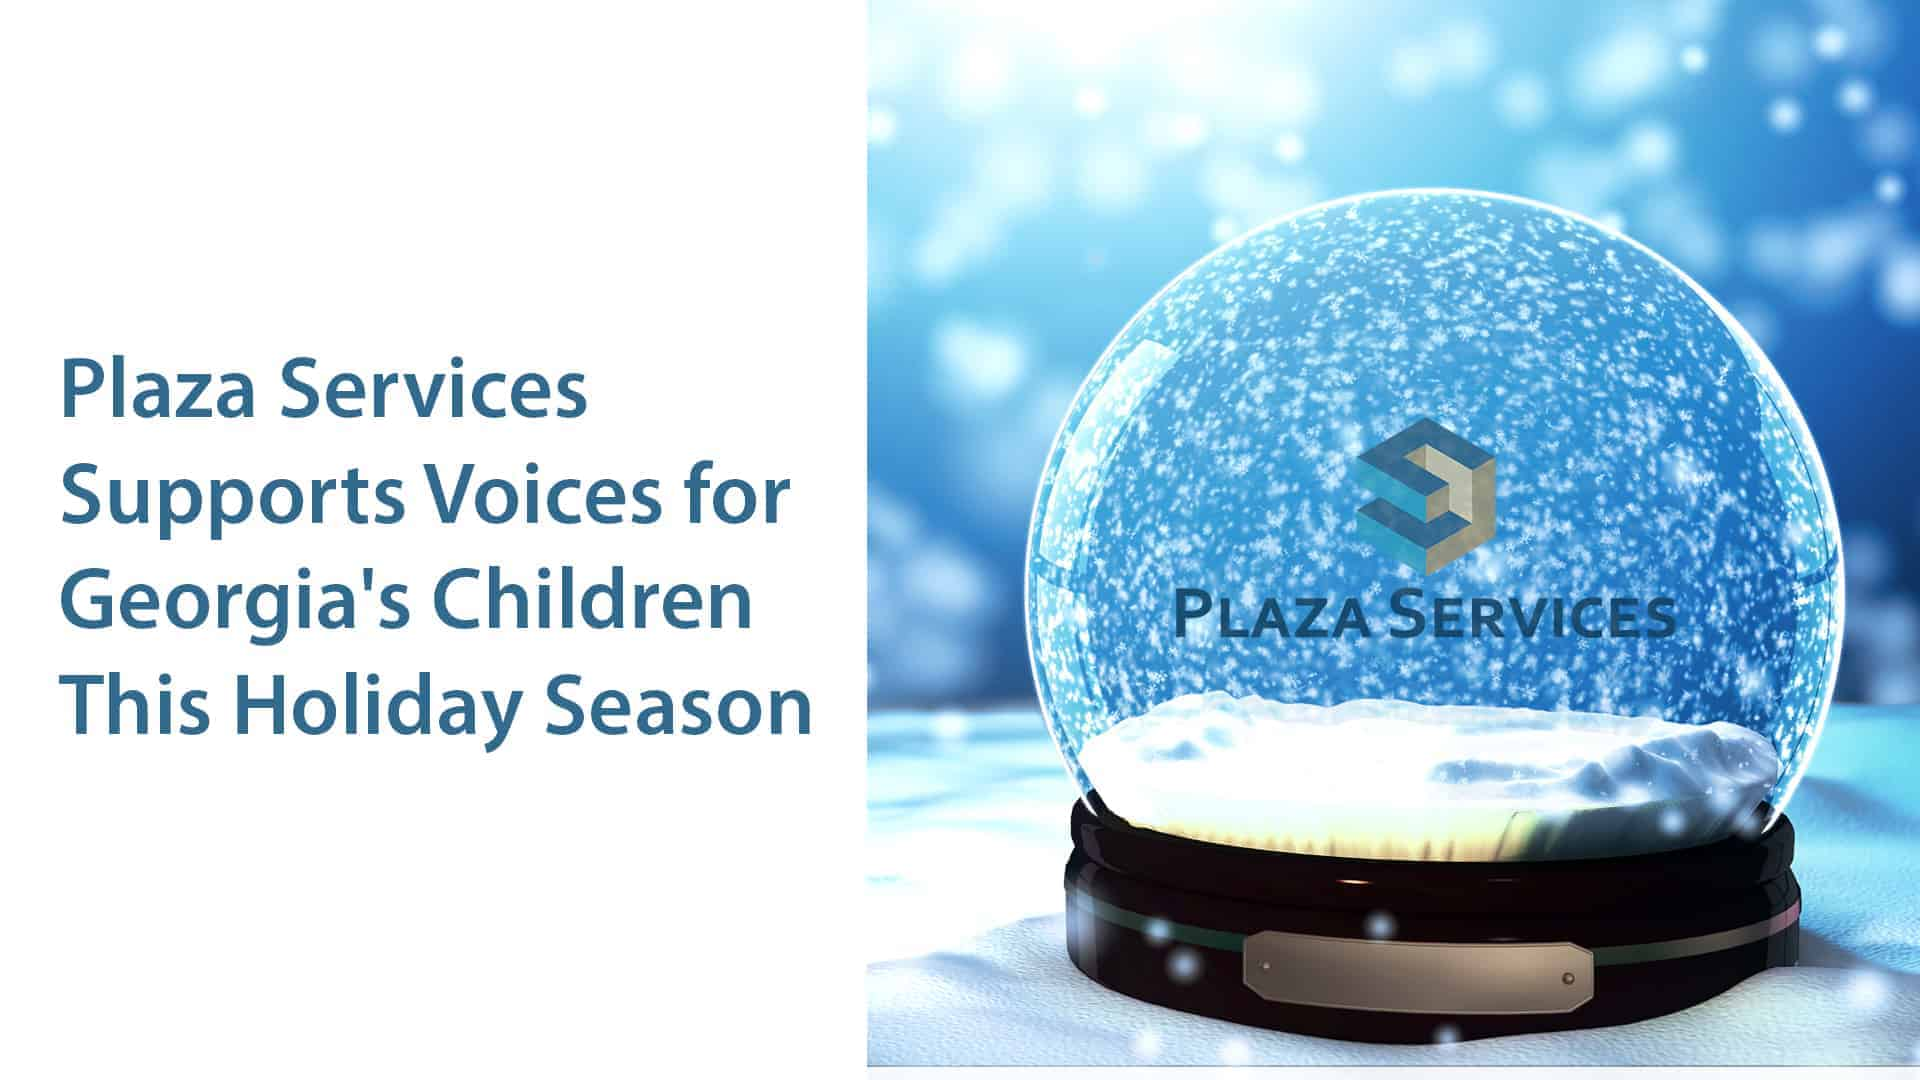 Christmas Snowglobe Snowflakes on Blue Background